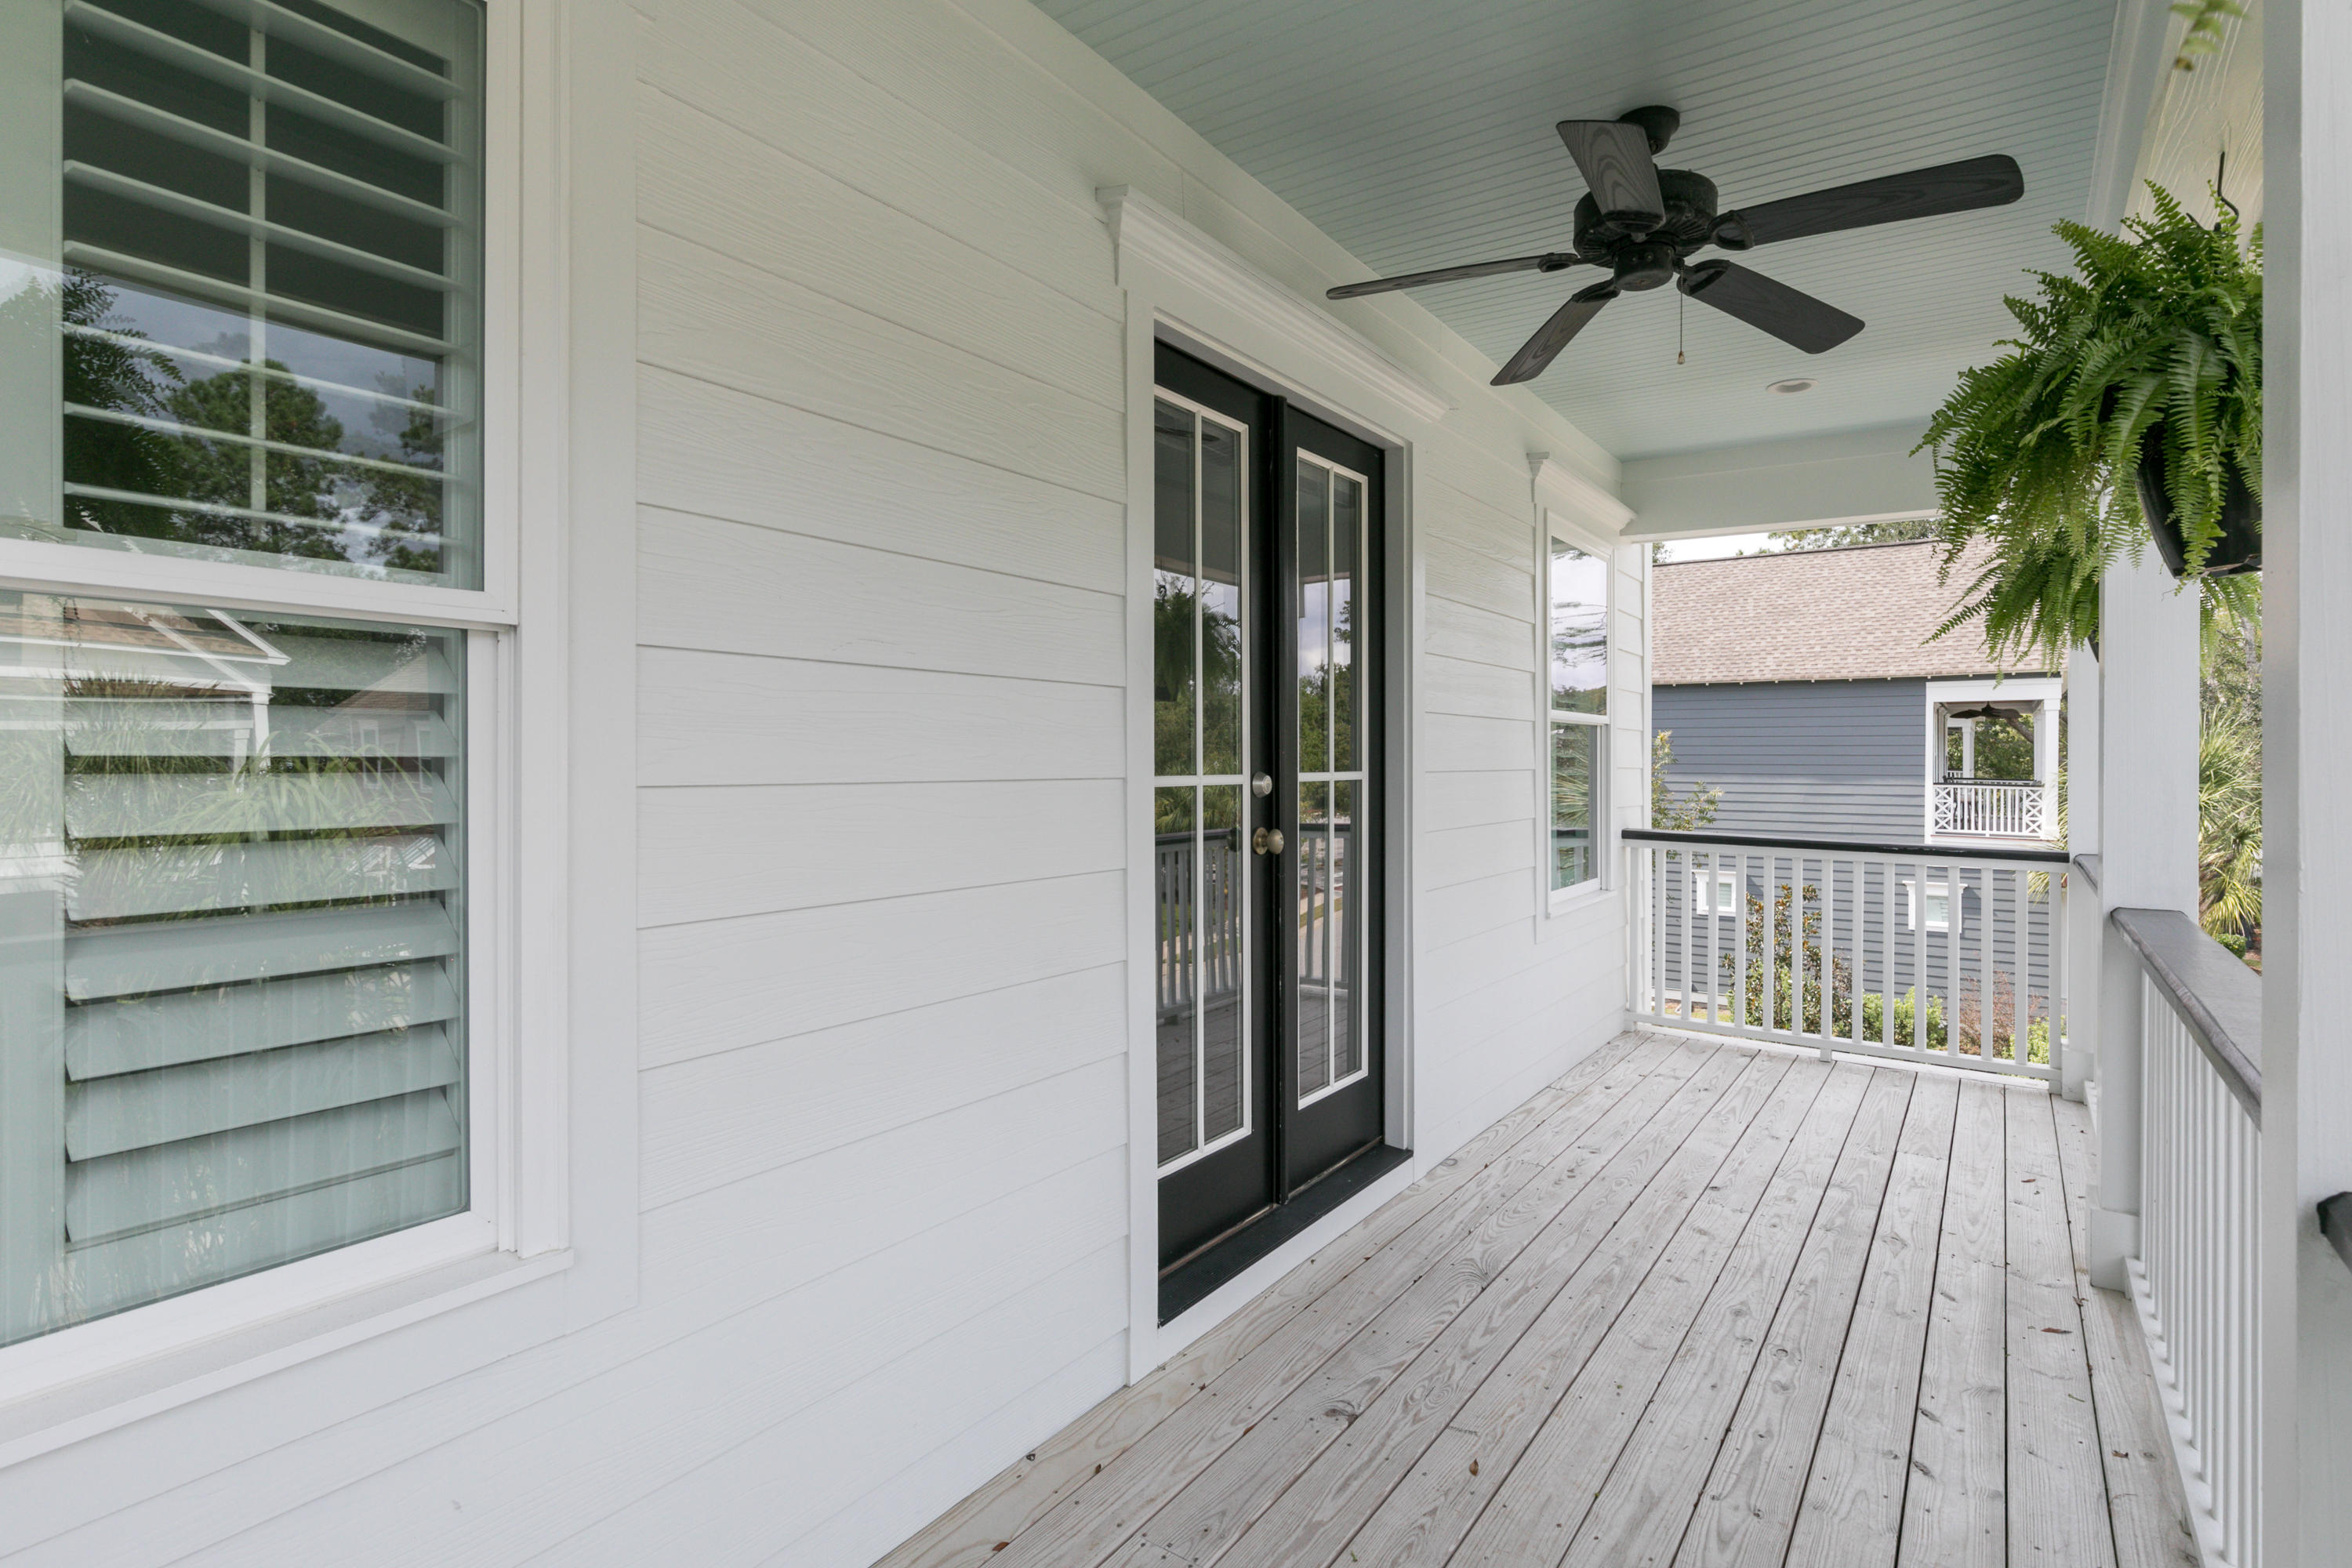 Wexford Park Homes For Sale - 1133 Wexford, Mount Pleasant, SC - 21